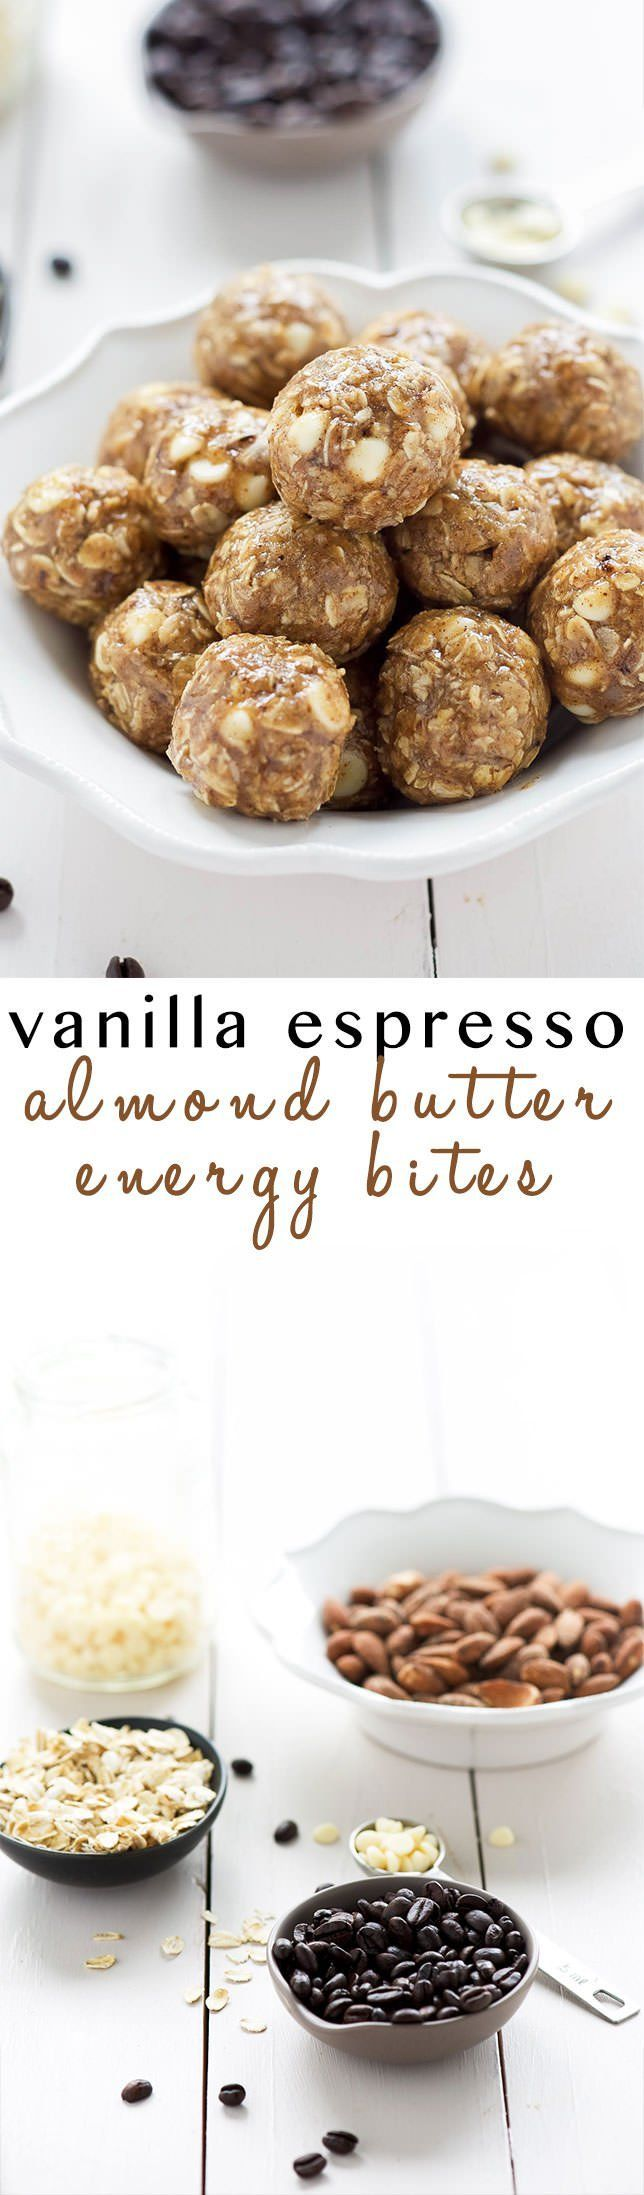 Vanilla Espresso Almond Butter Energy Bites | Gluten Free, Chocolate, Low Carb, Clean Eating, Maple Syrup, Cookie Dough, Protein Ball